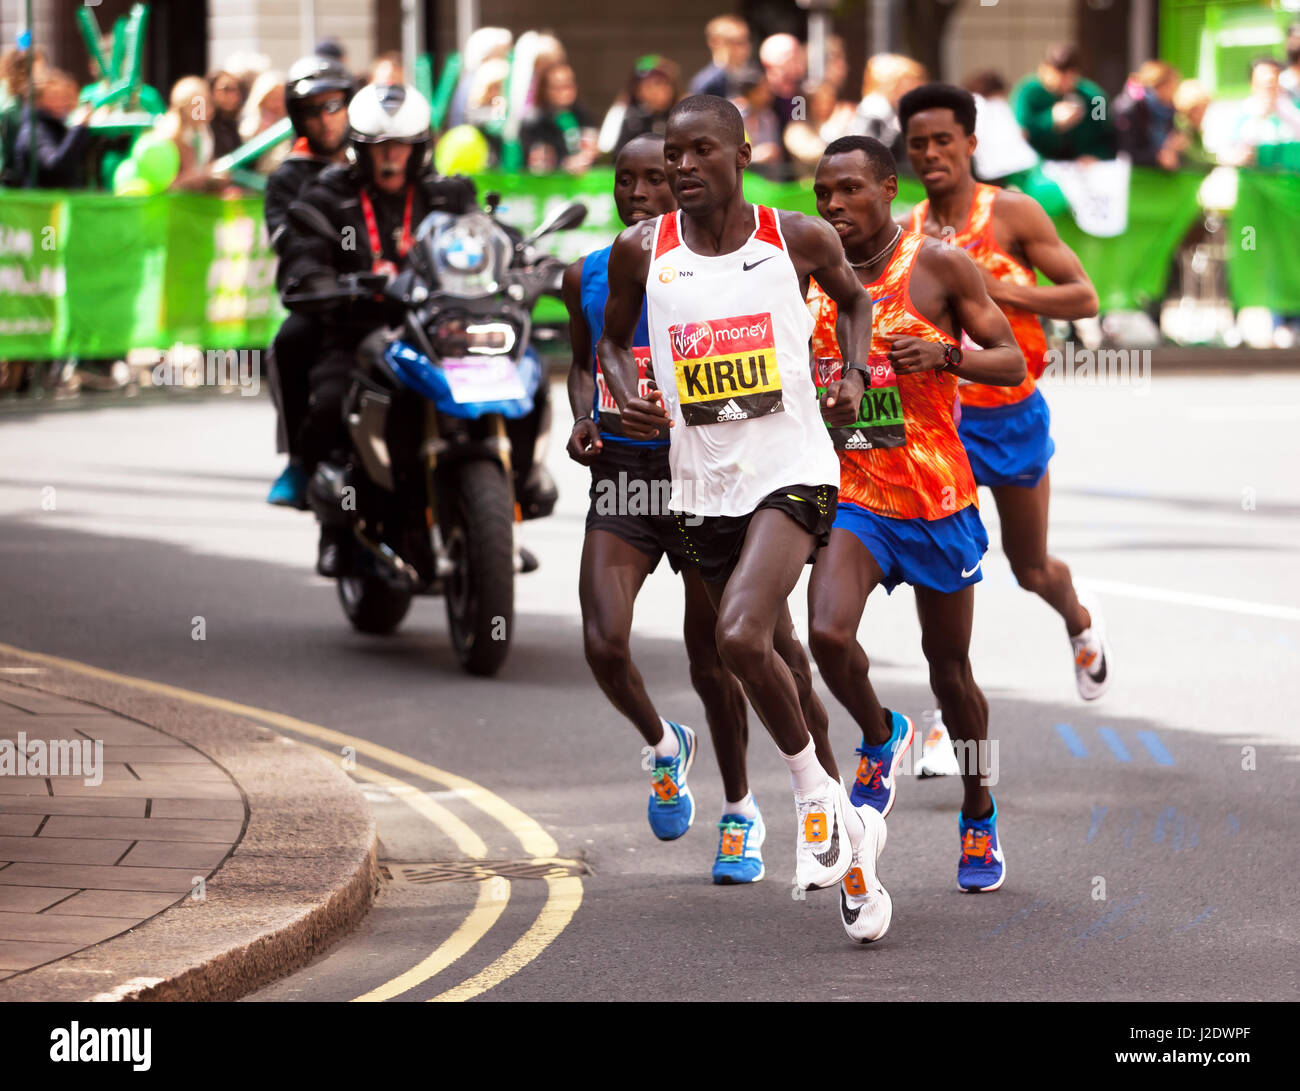 Abel Kiru  leading the men's elite race at the 2017 London Marathon. He went on to finish 4th, in a time of 02:07:45. Stock Photo